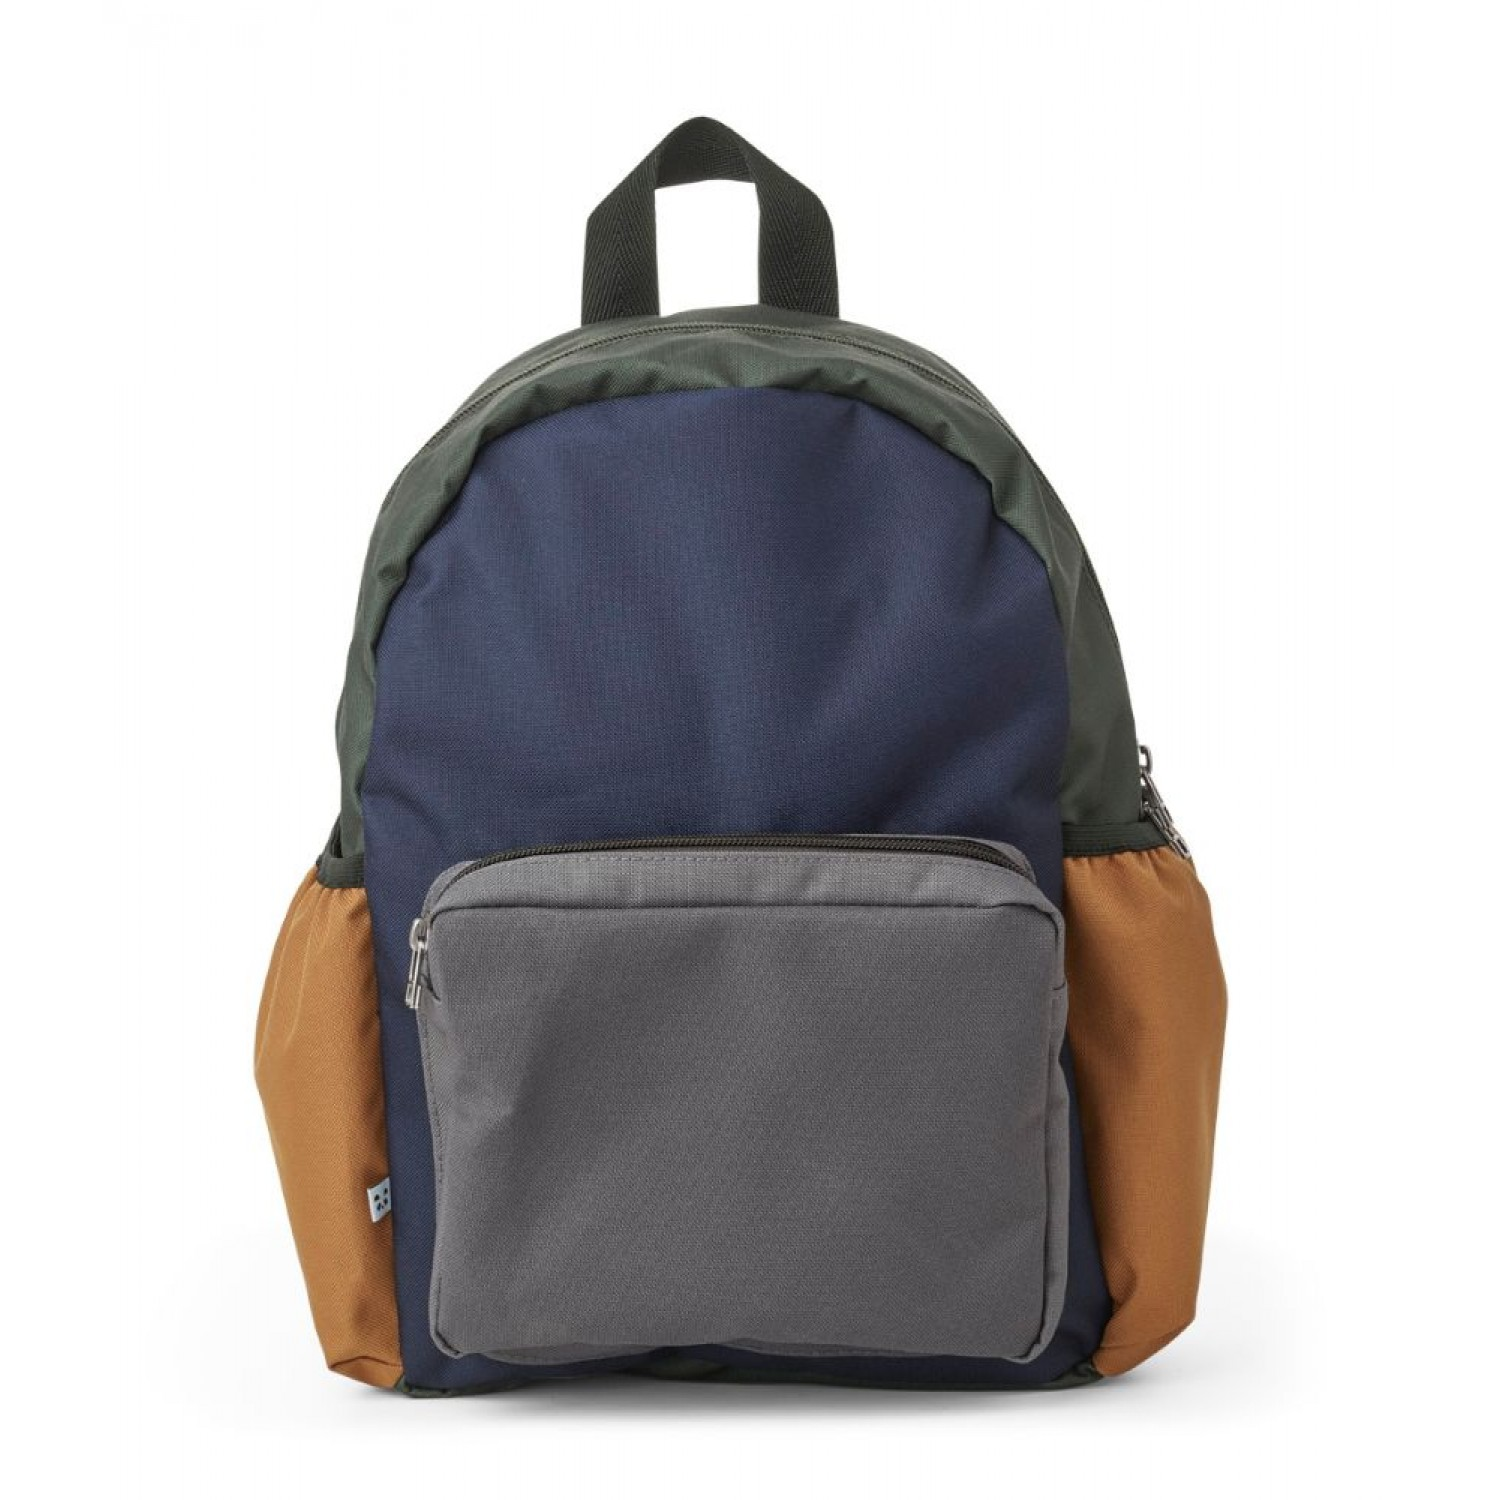 Wally Backpack - Navy mix